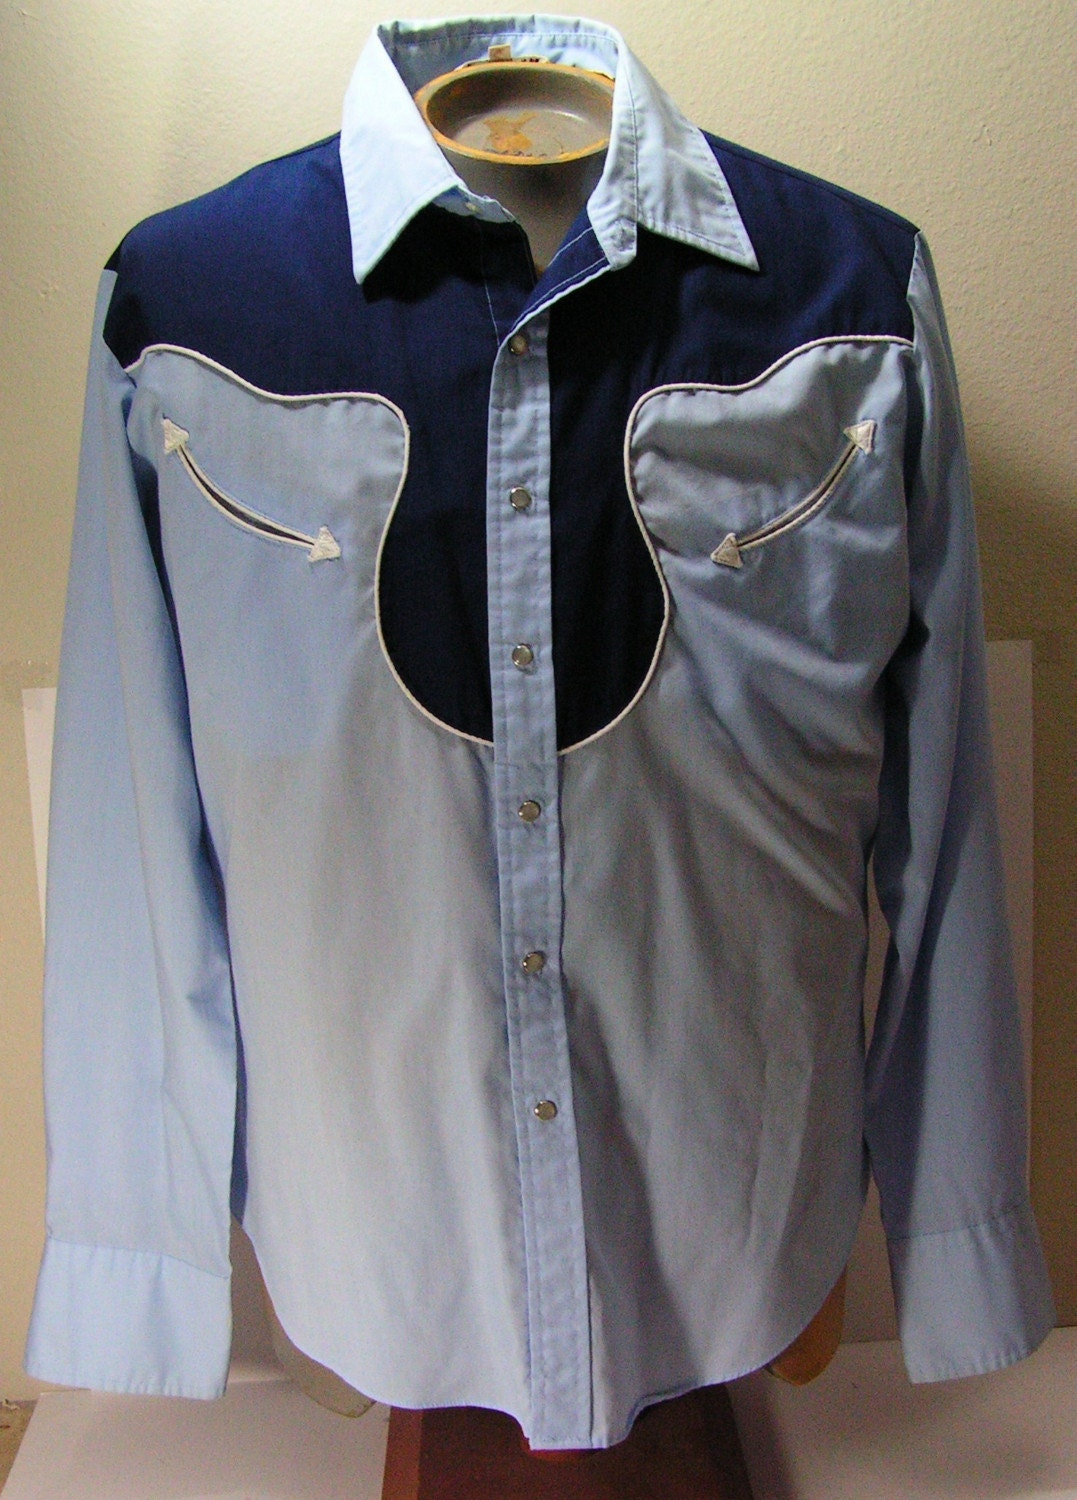 This great Arena Fit Ladies' Western Snap Button Denim Shirt from Cruel Girl is the best way to beat chilly fall weather in great style! This lightweight shirt features white pearl snap buttons, and is the perfect layer for cool fall days! This shirt has a feminine Arena Fit that makes it .